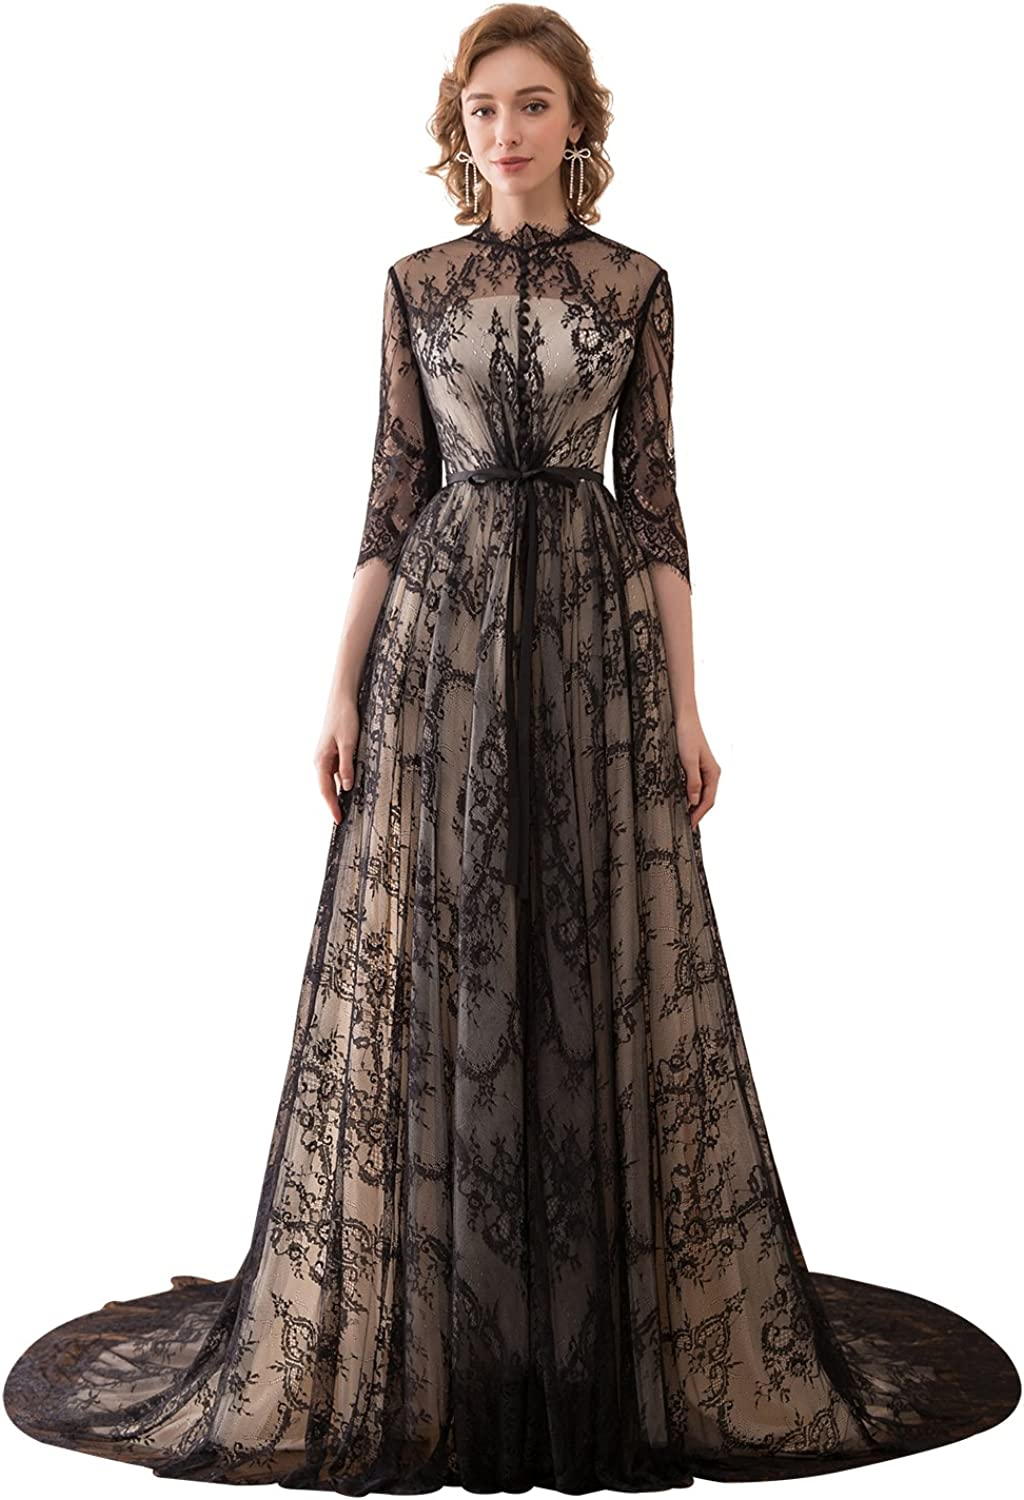 Epinkbridal Lace Evening Formal Gowns with 3 4 Sleeve Long Elegant Wedding Guest Dress